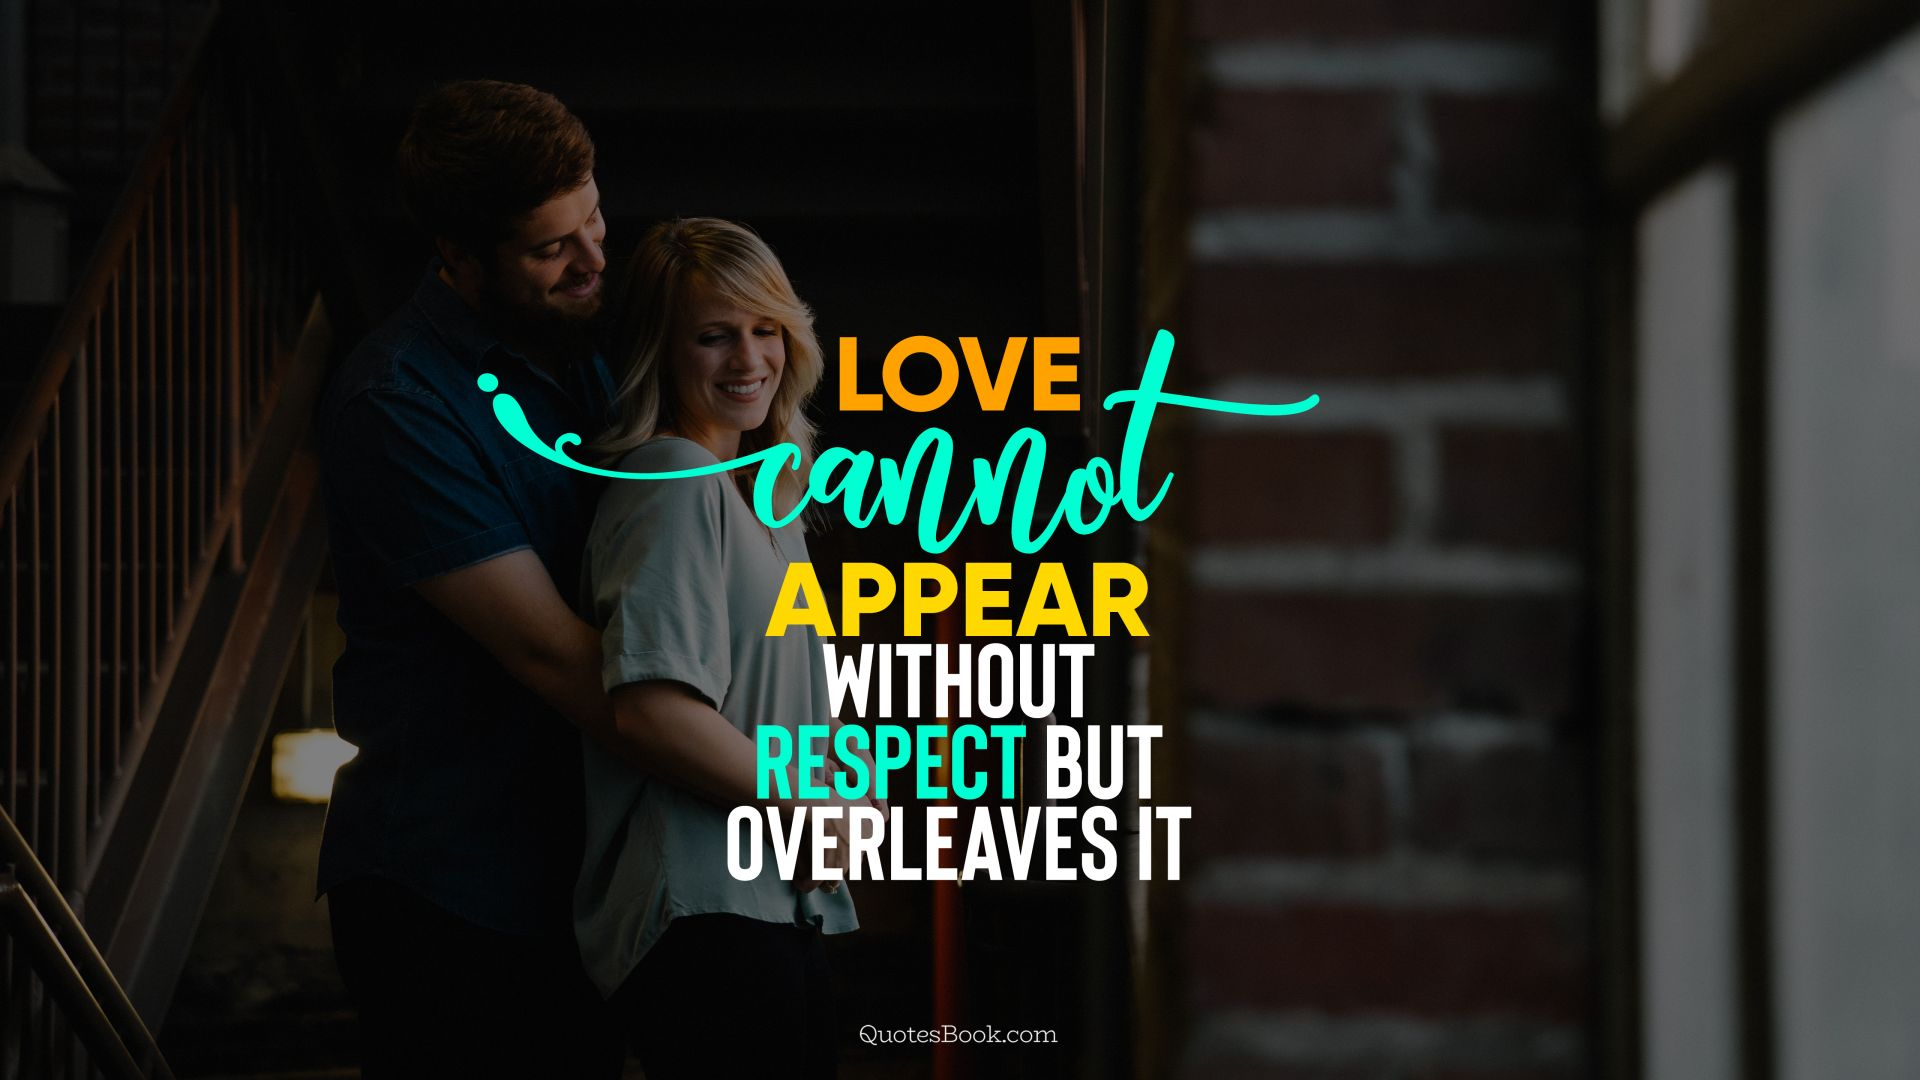 Love cannot appear without respect but overleaves it